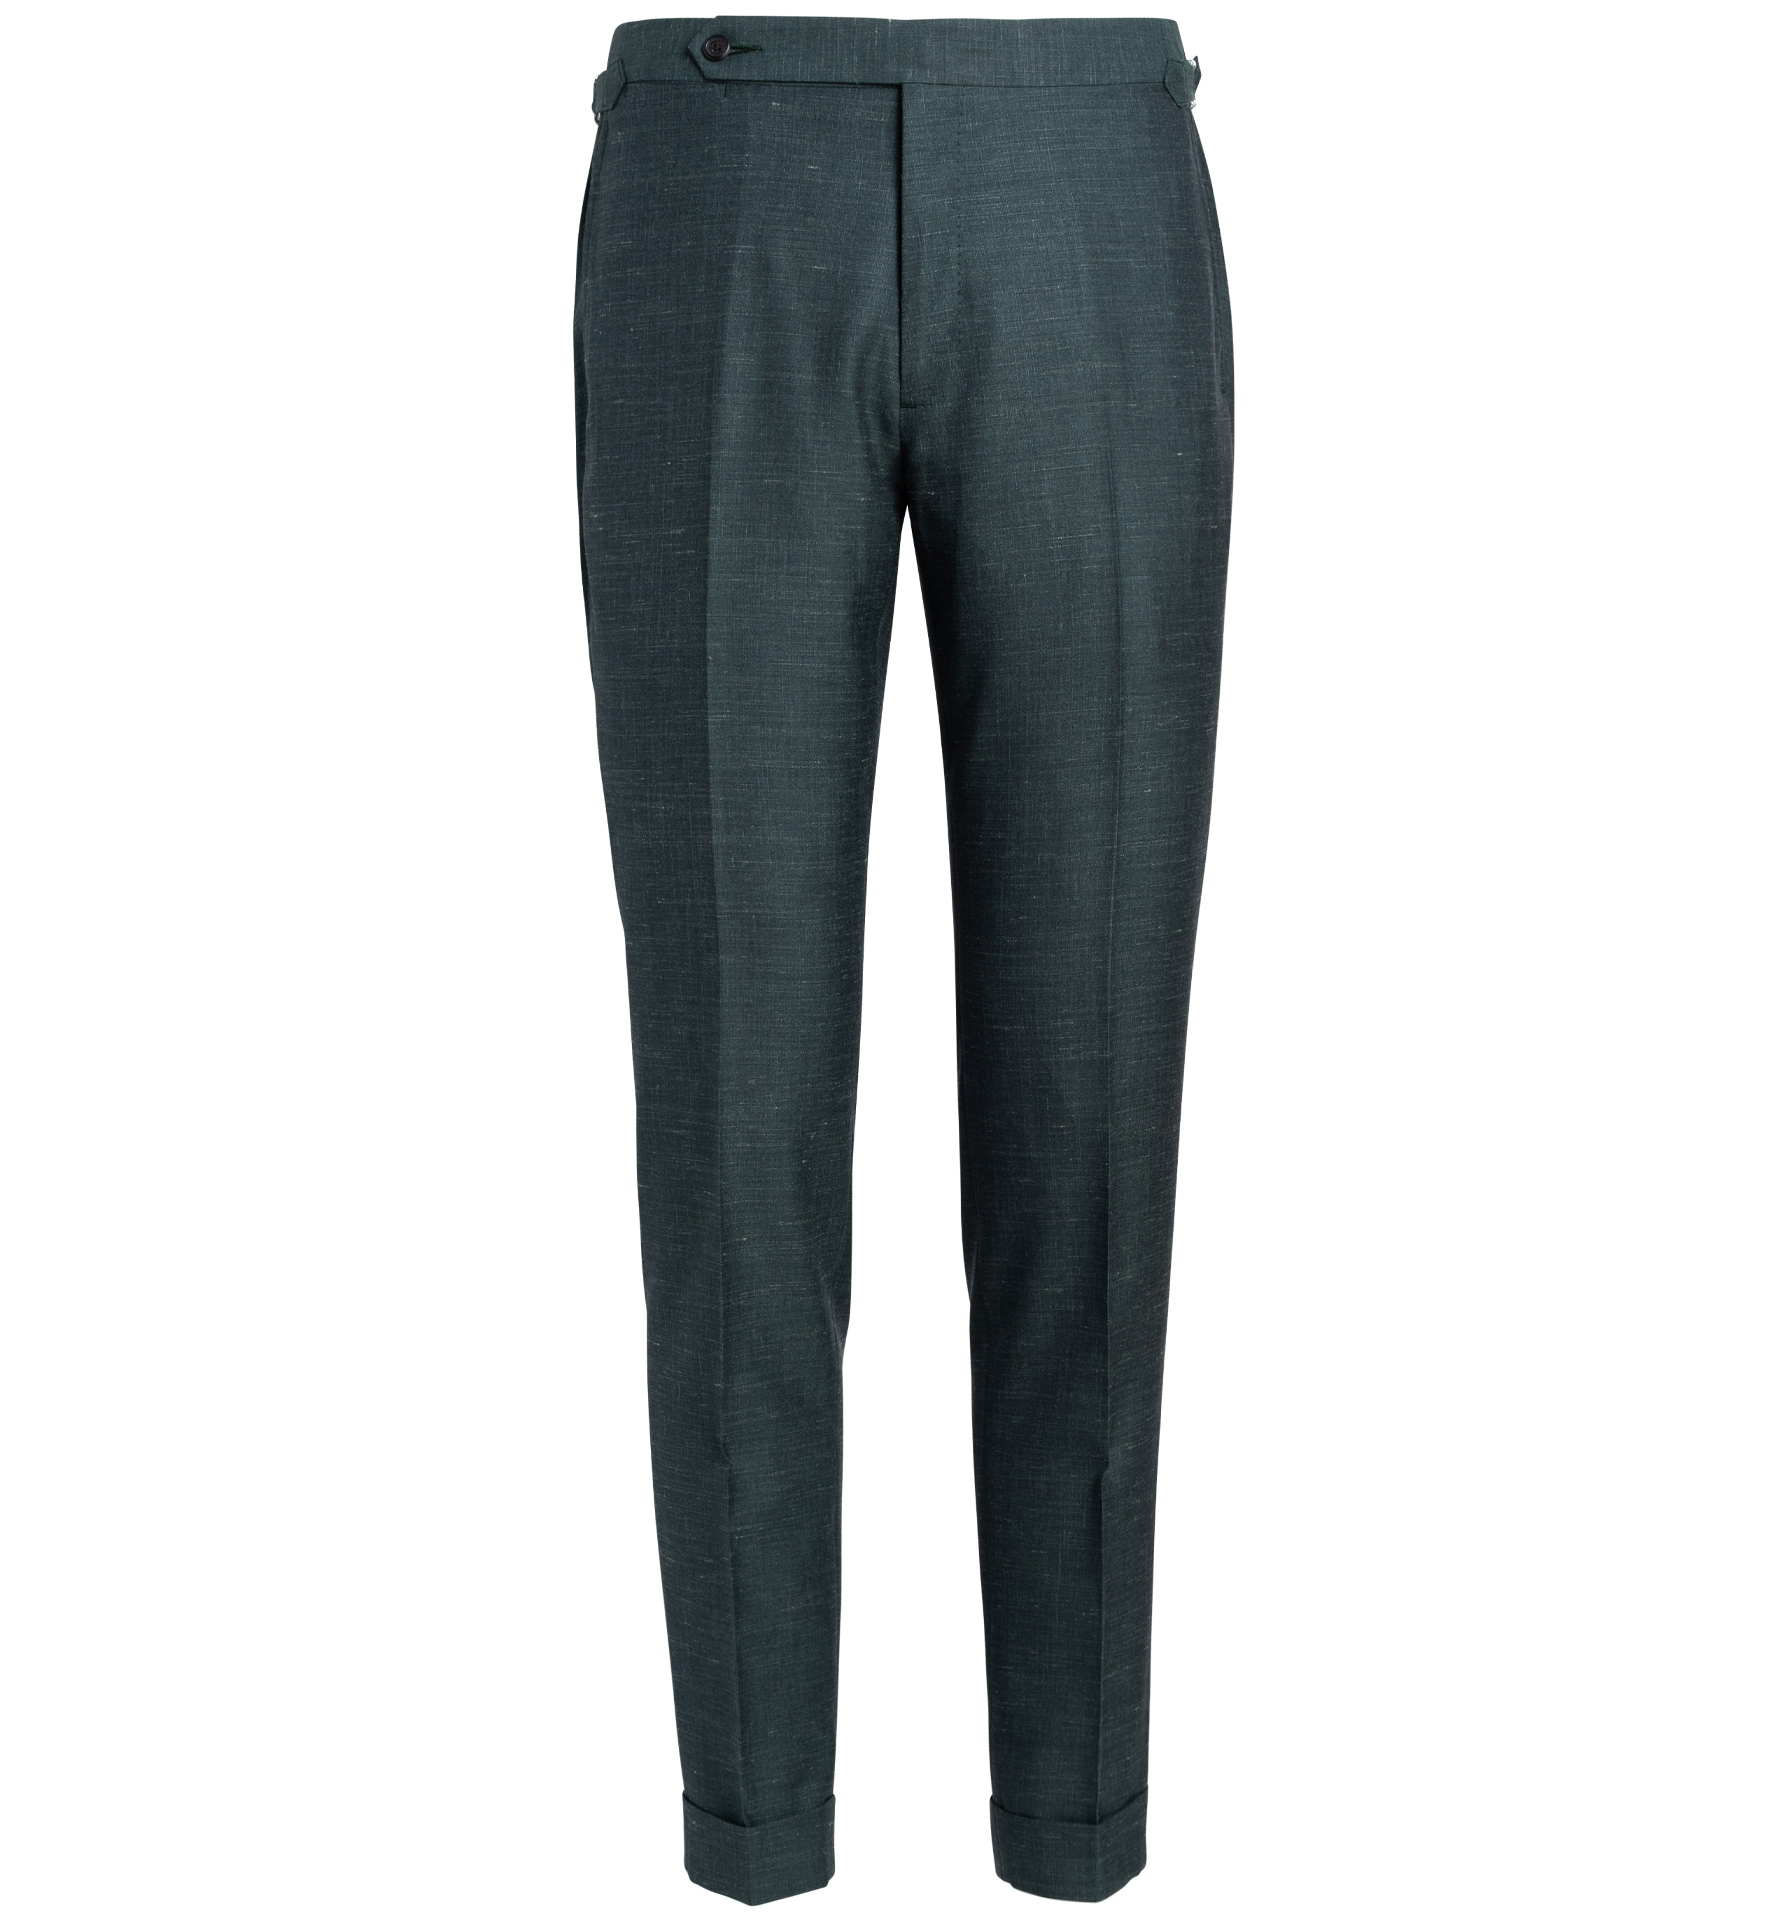 Zoom Image of Allen Faded Green Wool Silk and Linen Trouser